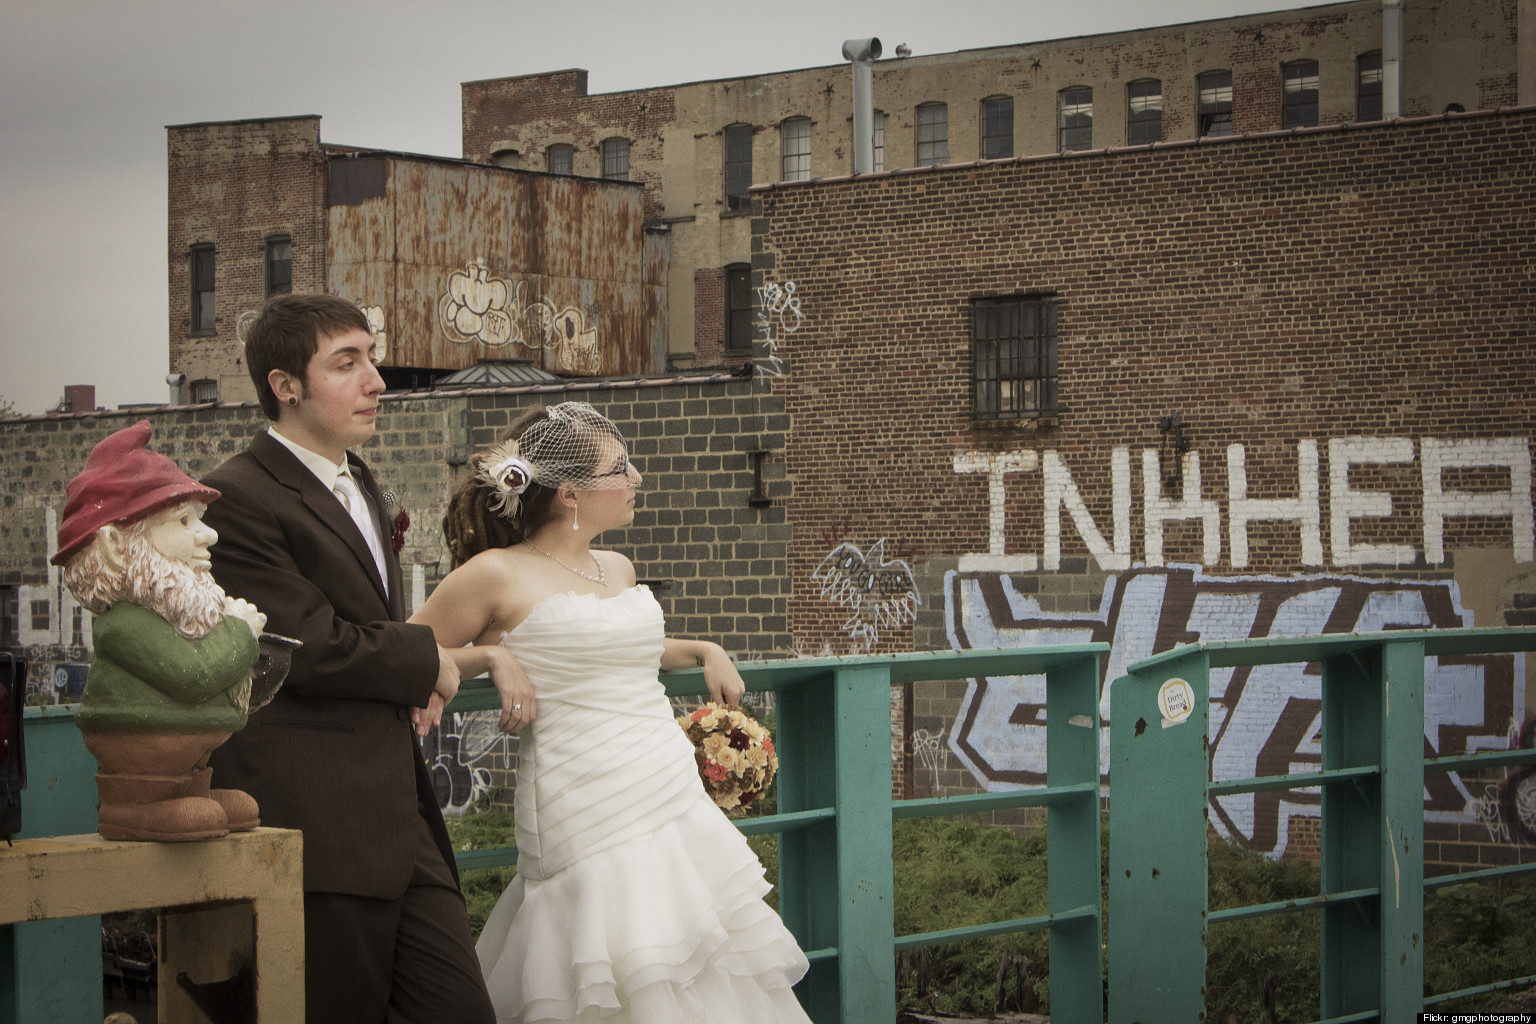 Hipster Wedding: How To Tell If You're At One